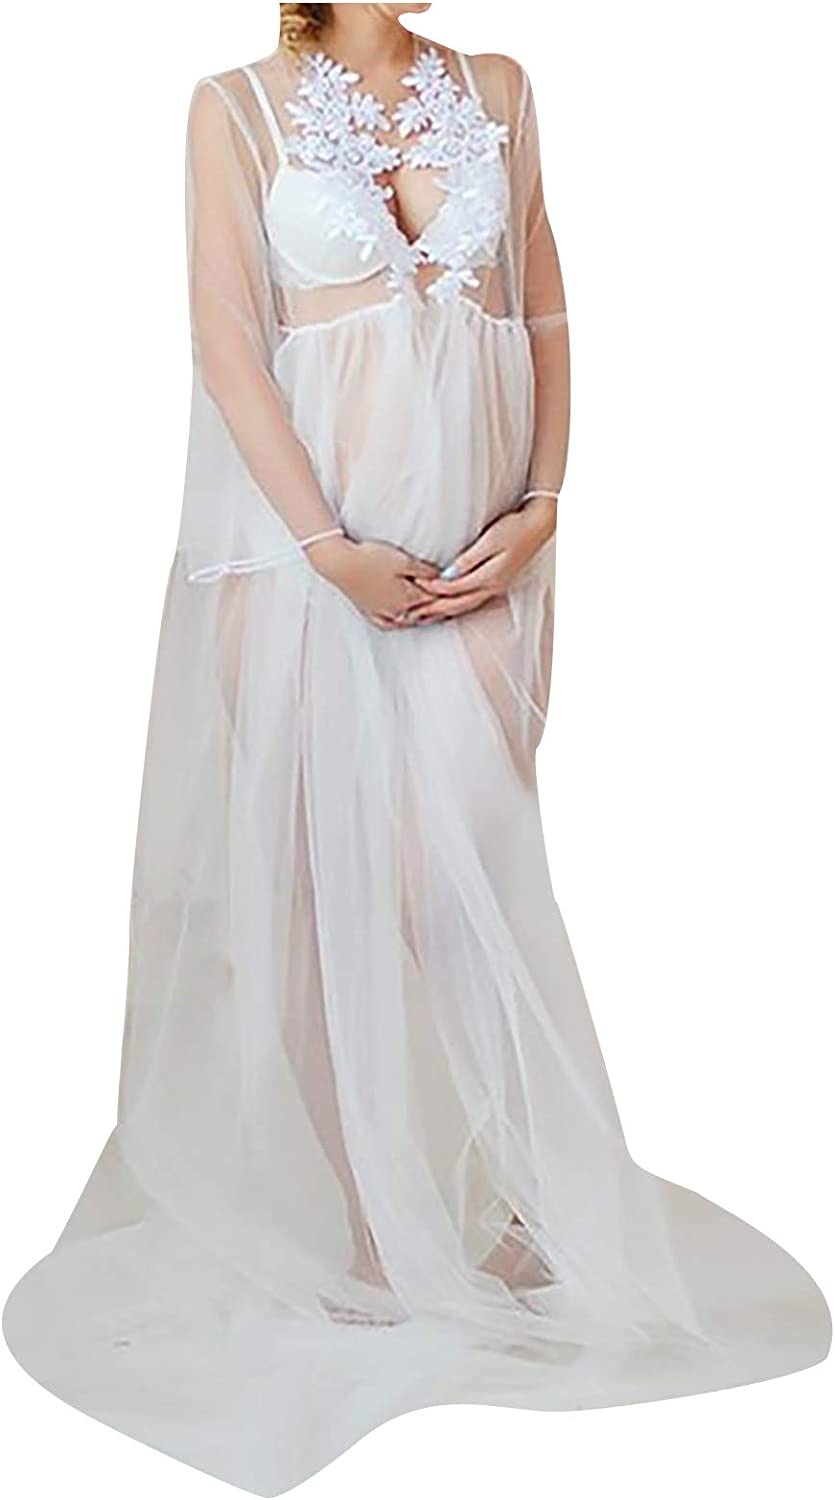 Limited price sale Gwewei4df Max 65% OFF Women Pregnants Sleeveless Strapless Sexy Perspective